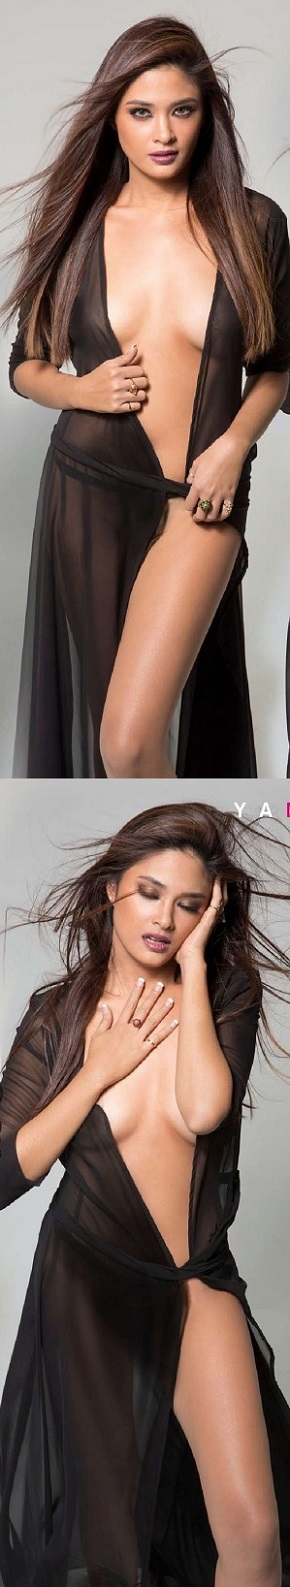 YAM  CONCEPCION  Photos 7!